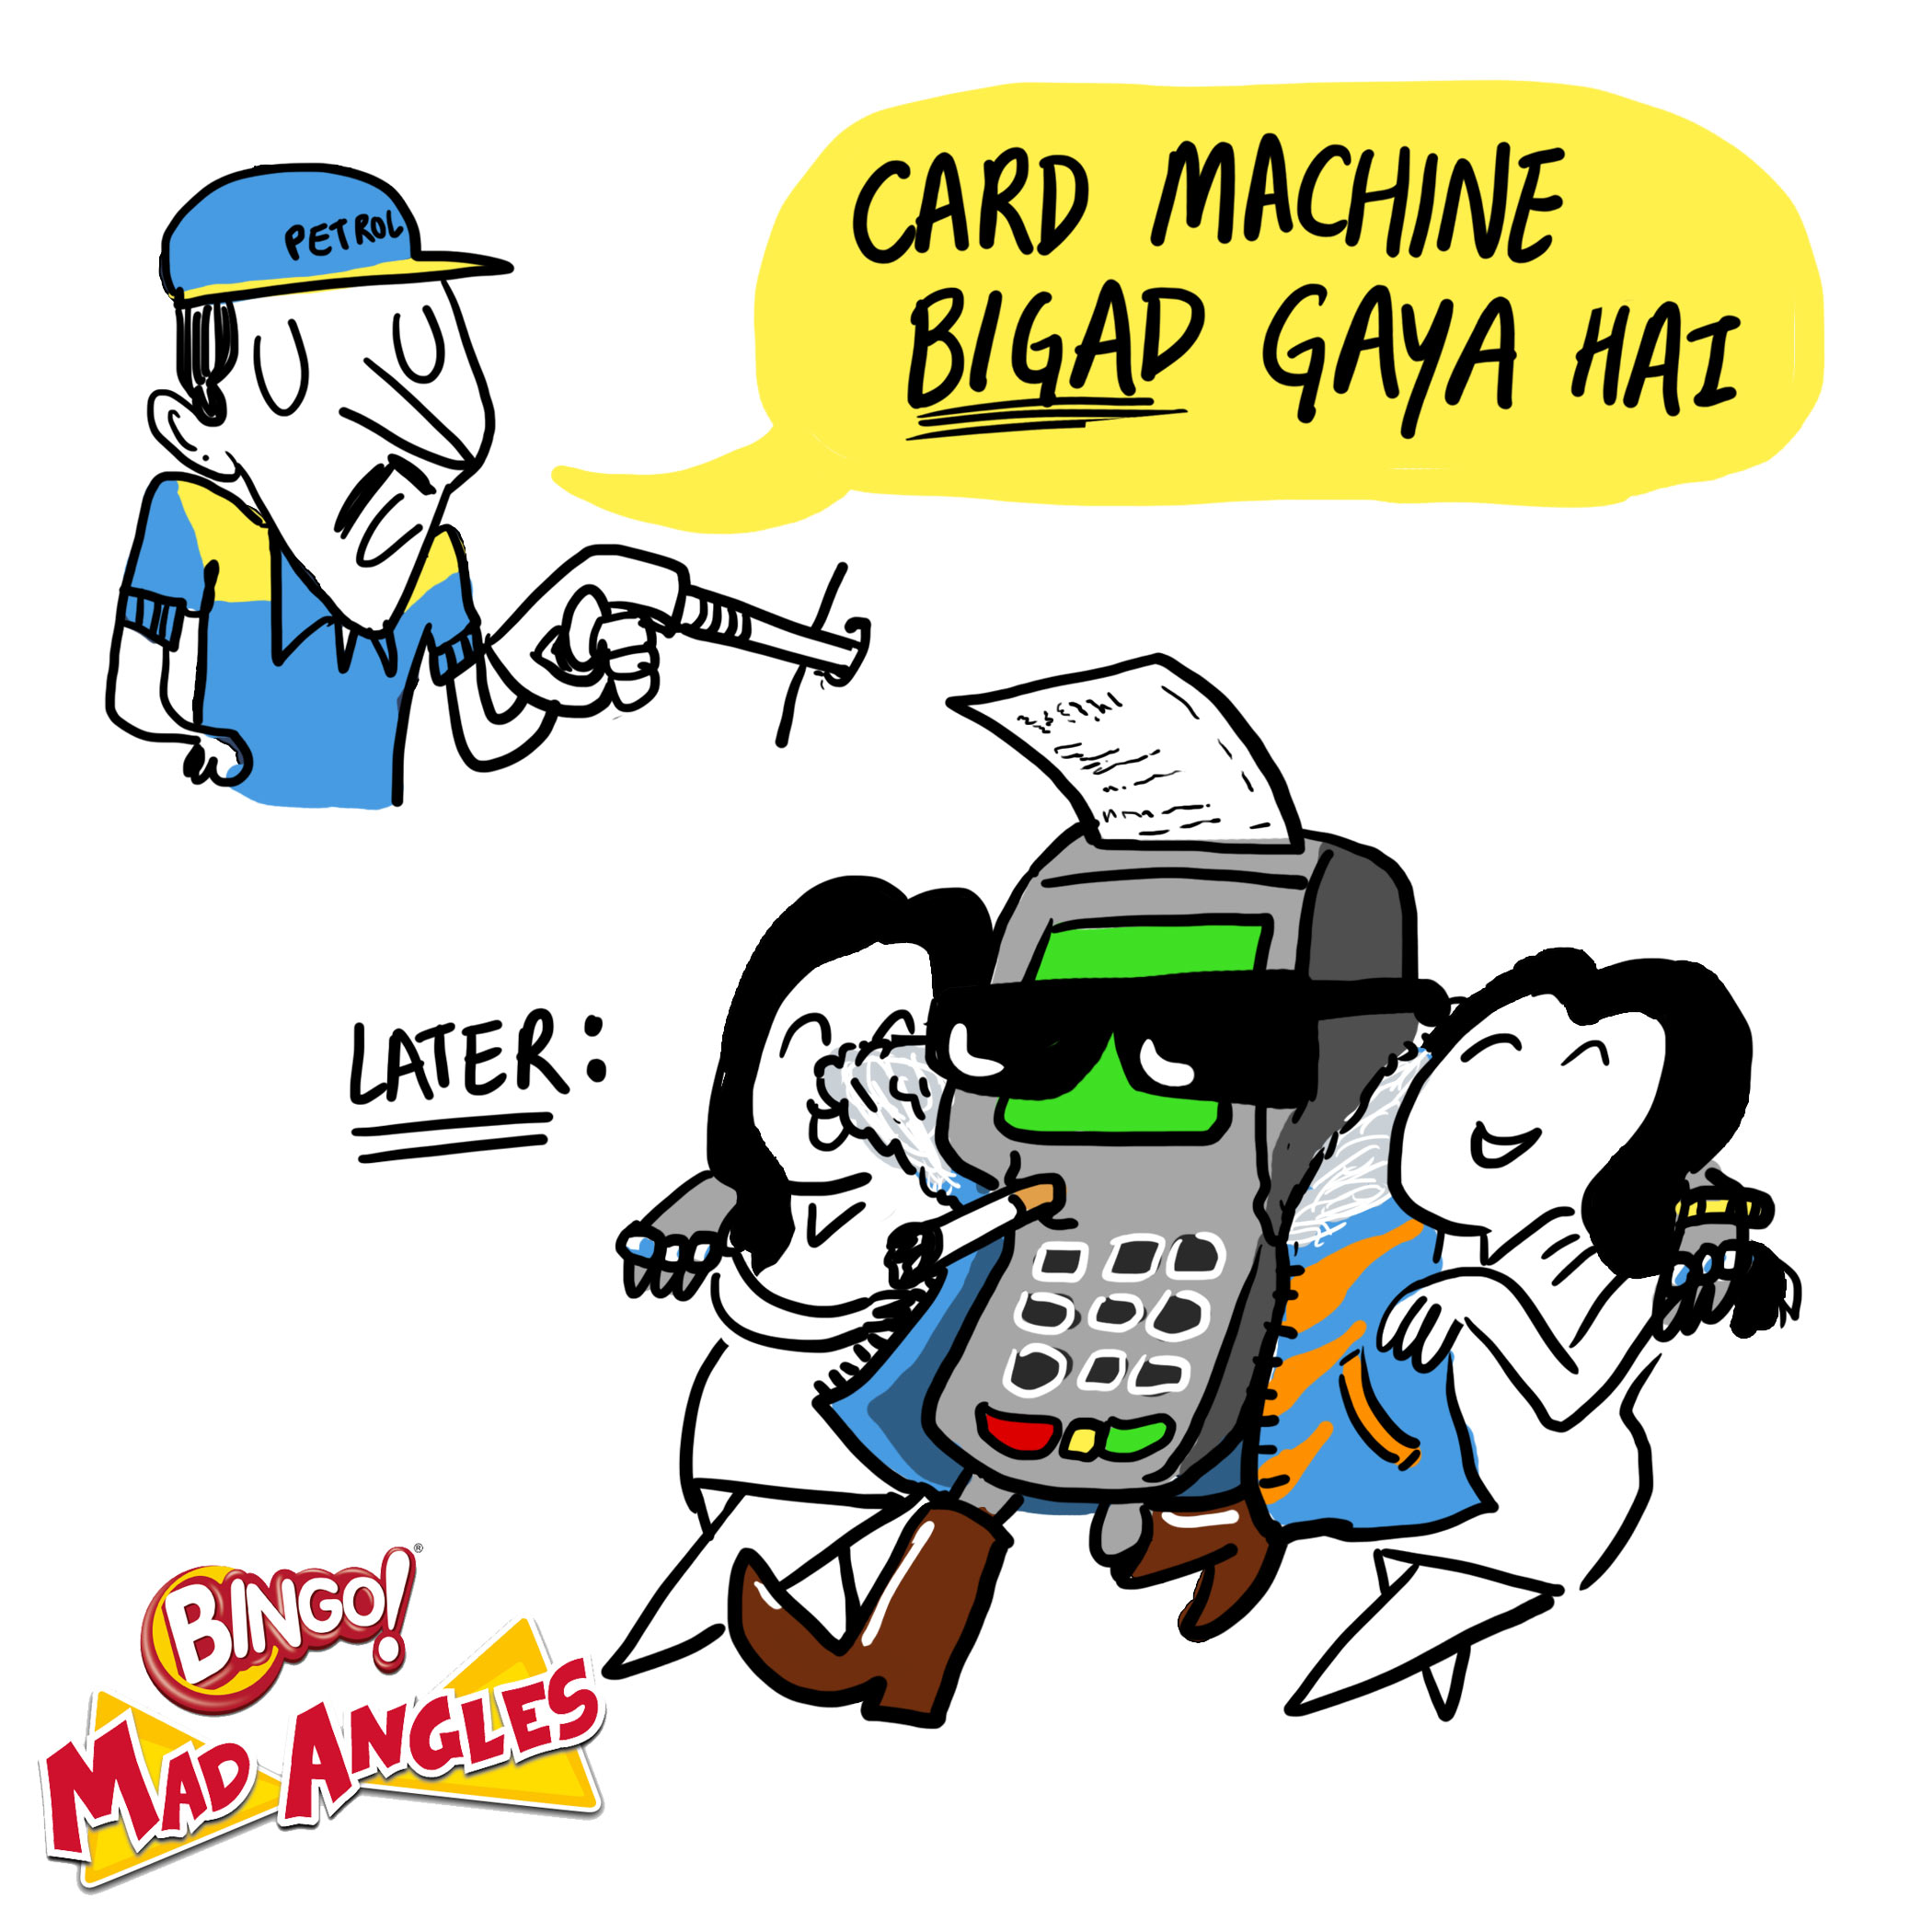 Card machine bigad gaya hai